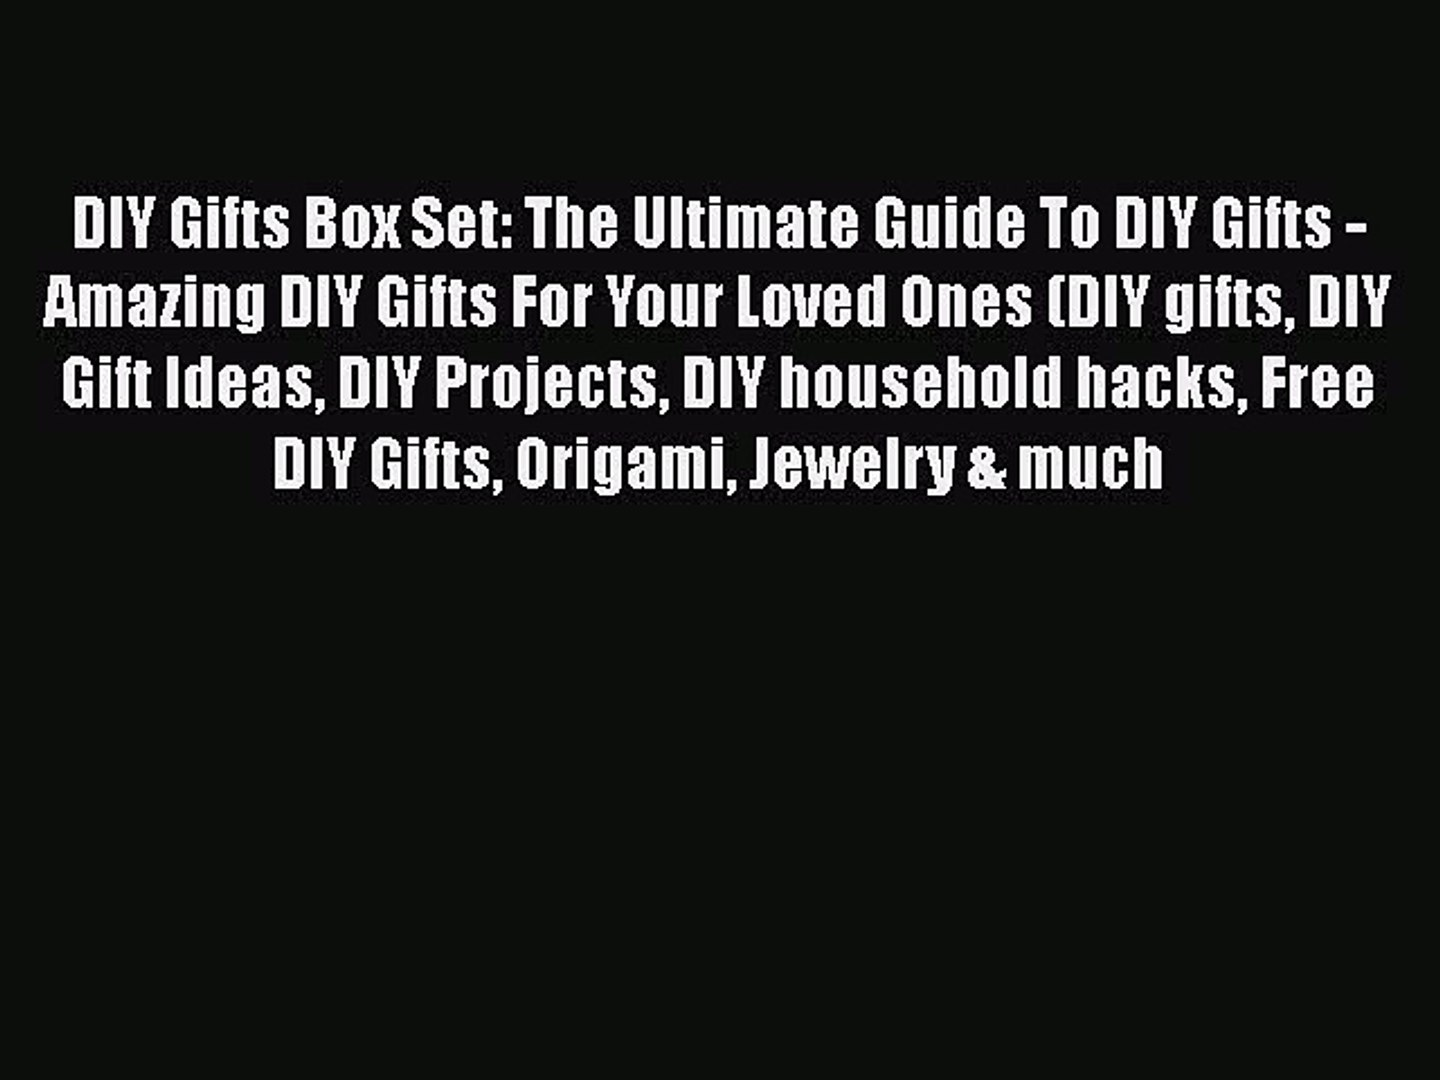 Read DIY Gifts Box Set: The Ultimate Guide To DIY Gifts - Amazing DIY Gifts For Your Loved